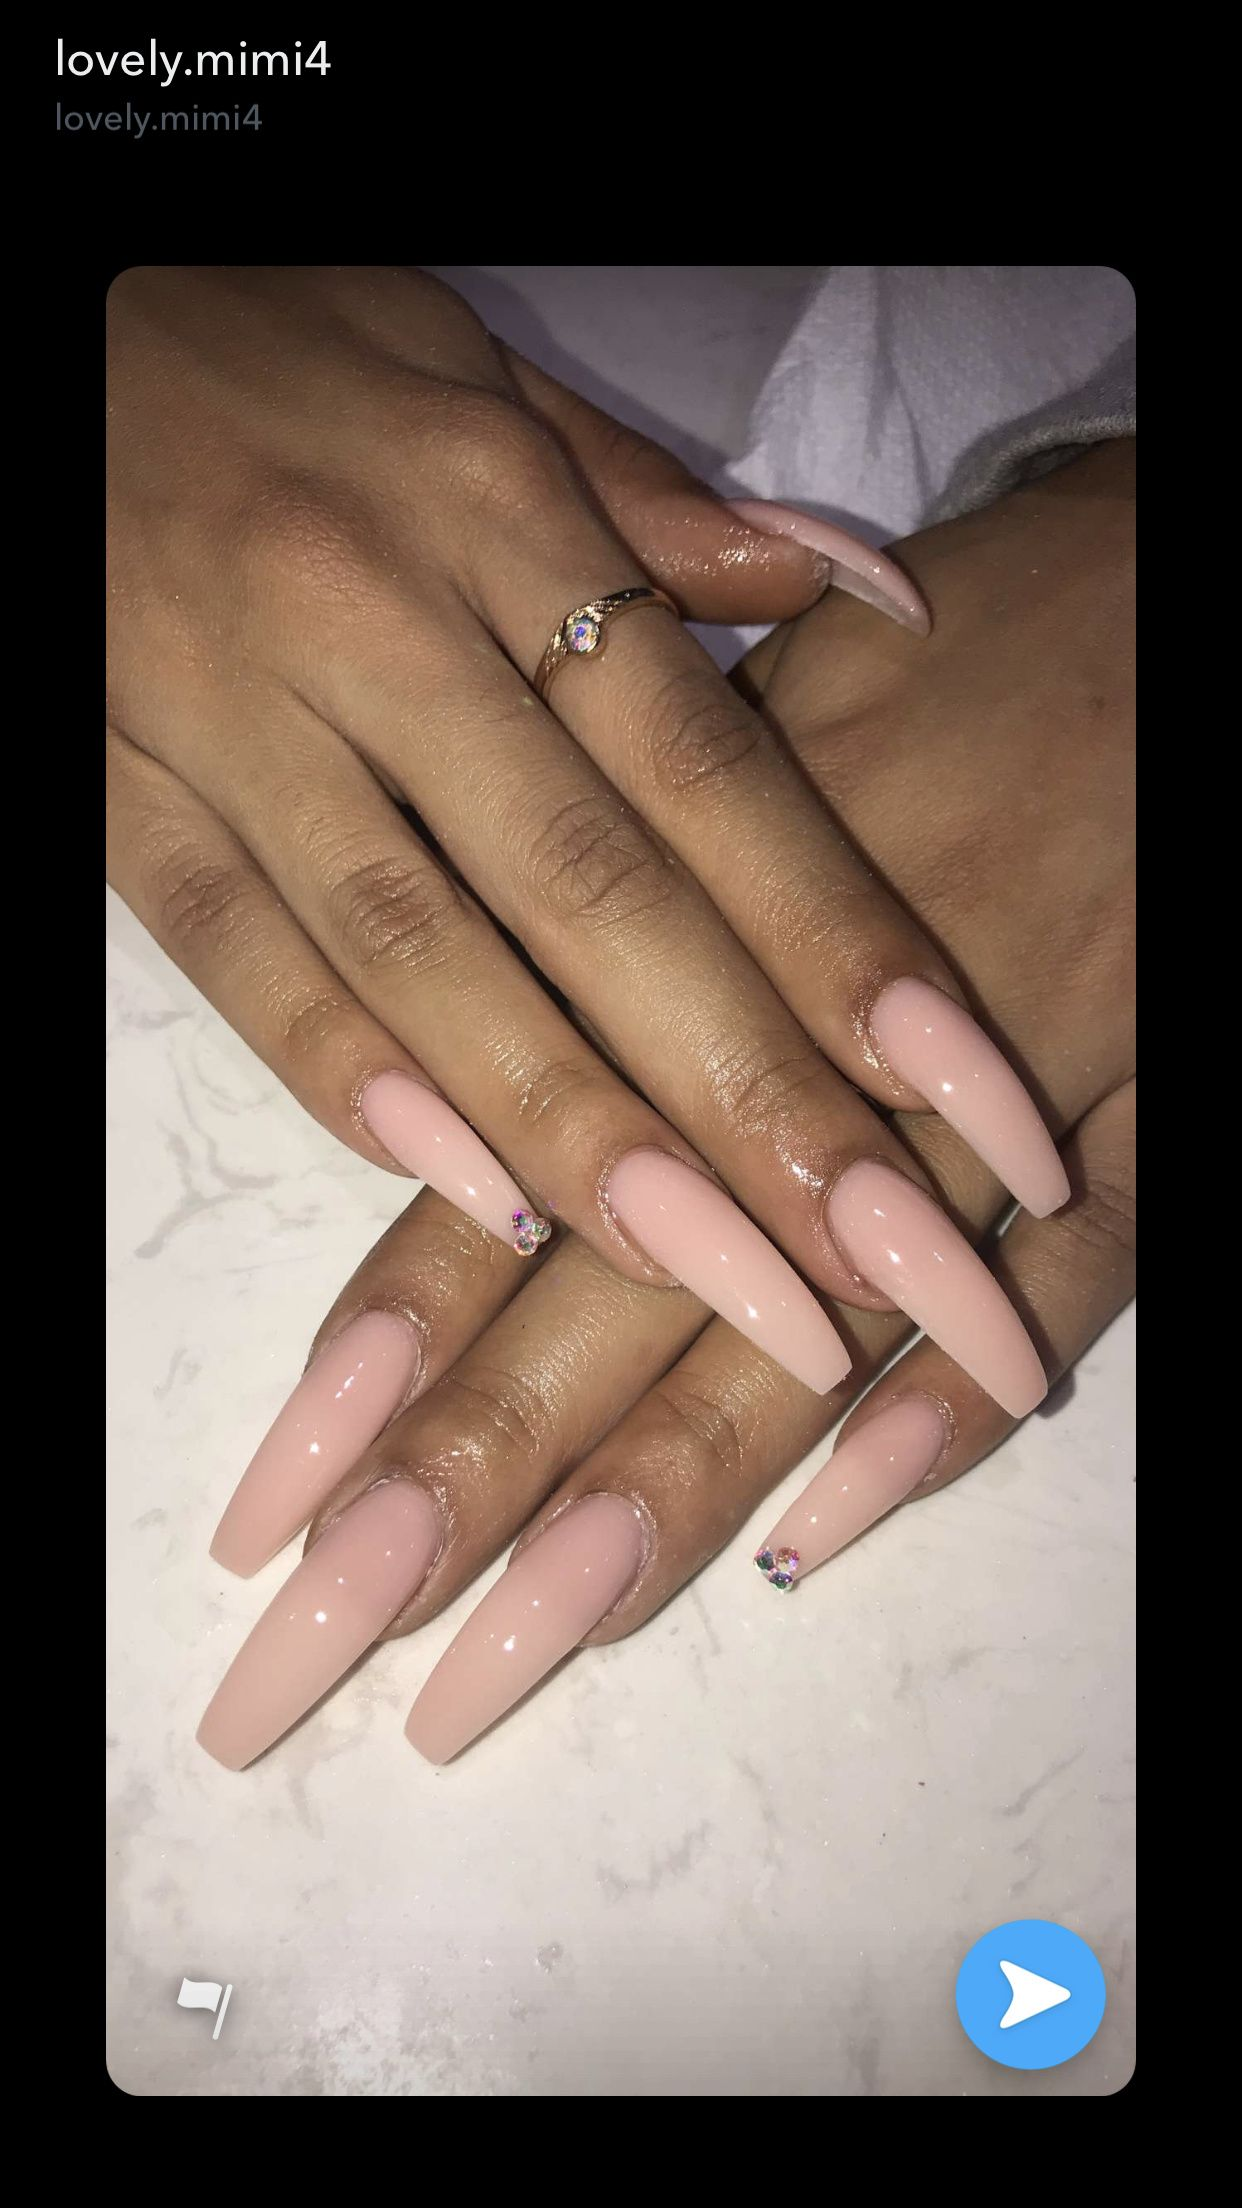 22 Awesome Acrylic Nails Near Me Follow Me For More Skienotsky Aœ 22 Awesome Acrylic Nails Near Me How To Remove Acrylic Nails 15 Steps W Nails In 2019